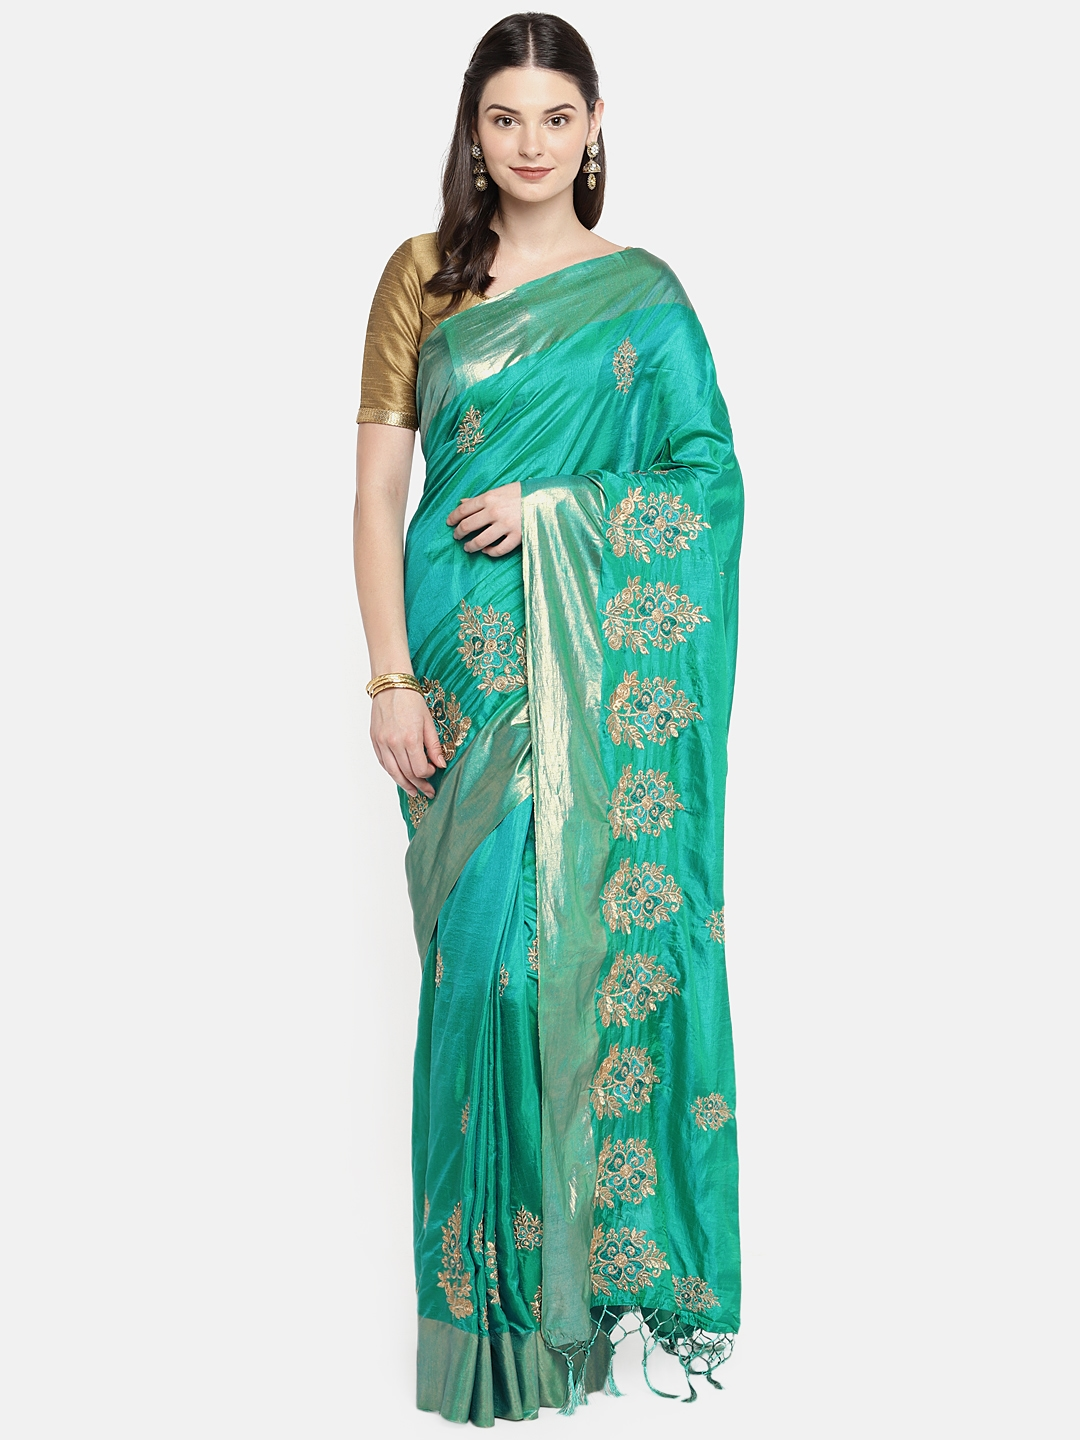 88102d3c33a Buy Rani Saahiba Turquoise Blue Embroidered Art Silk Saree - Sarees ...